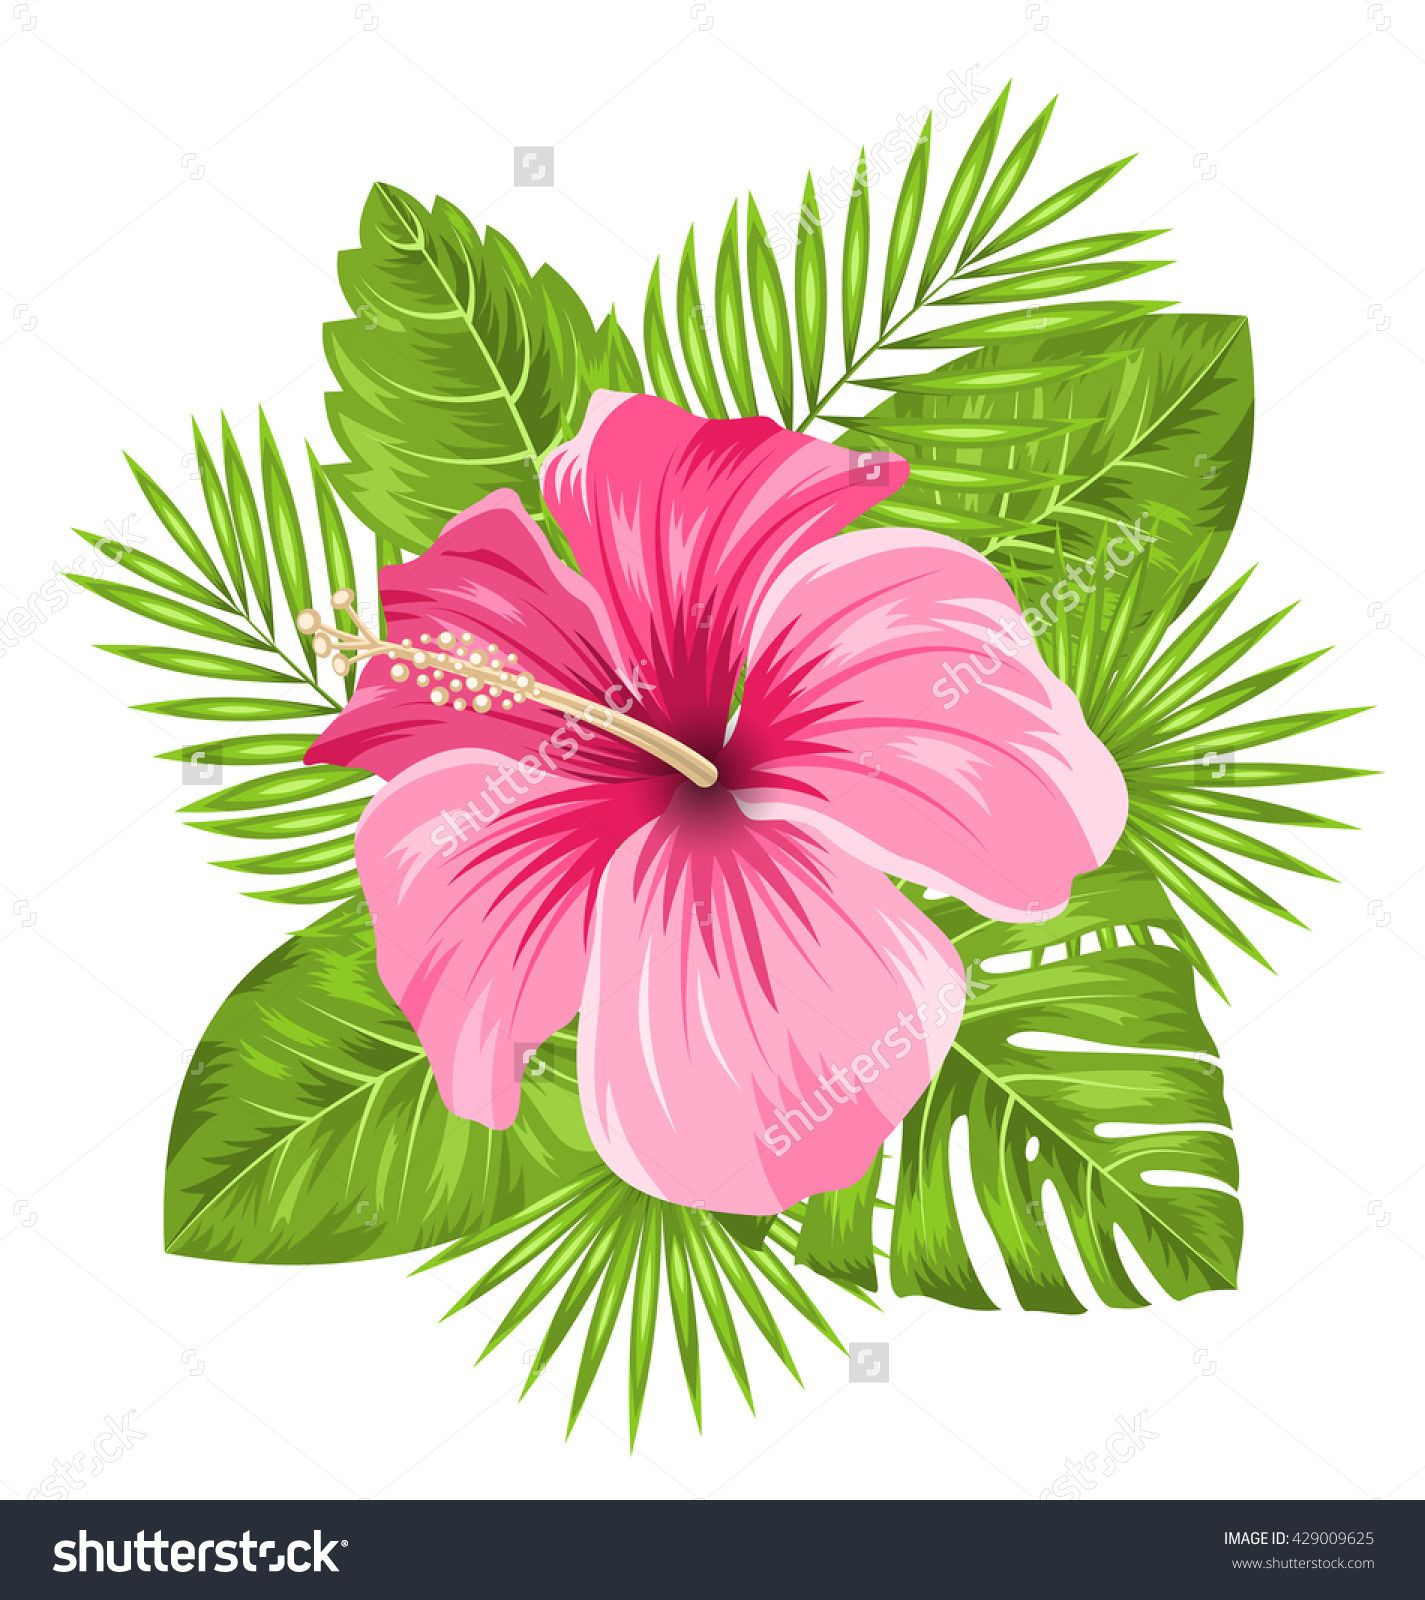 Illustration Beautiful Pink Hibiscus Flowers Blossom and Tropical Leaves Isolated on White Background raster